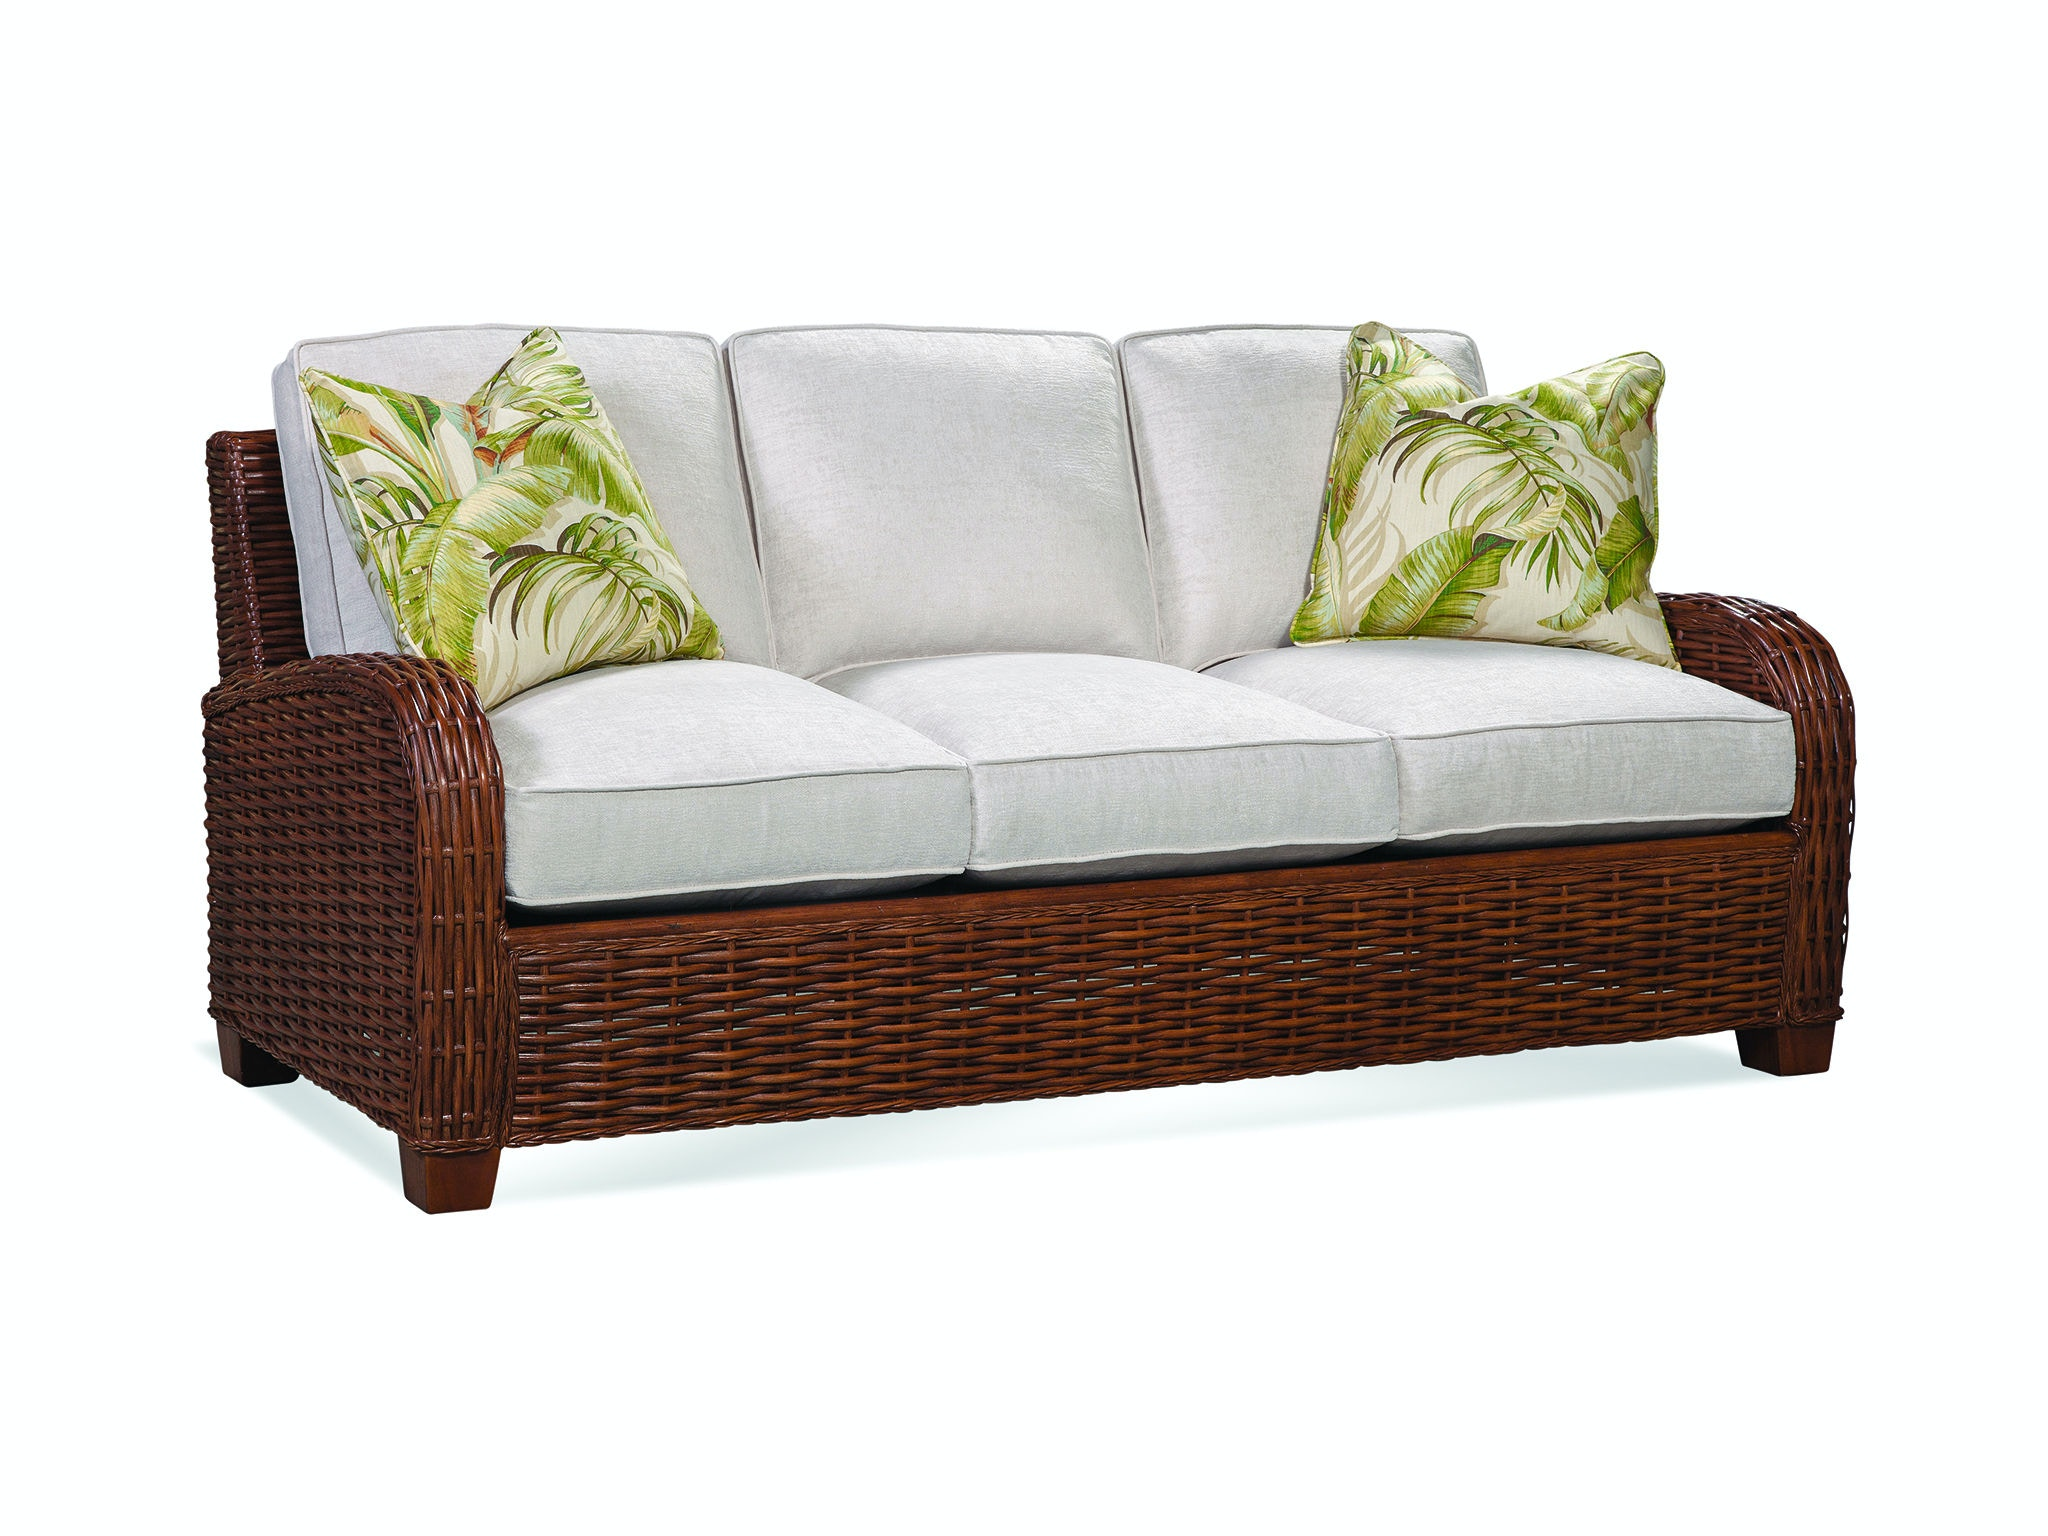 Copenhagen Queen Sleeper Sofa 1906-015